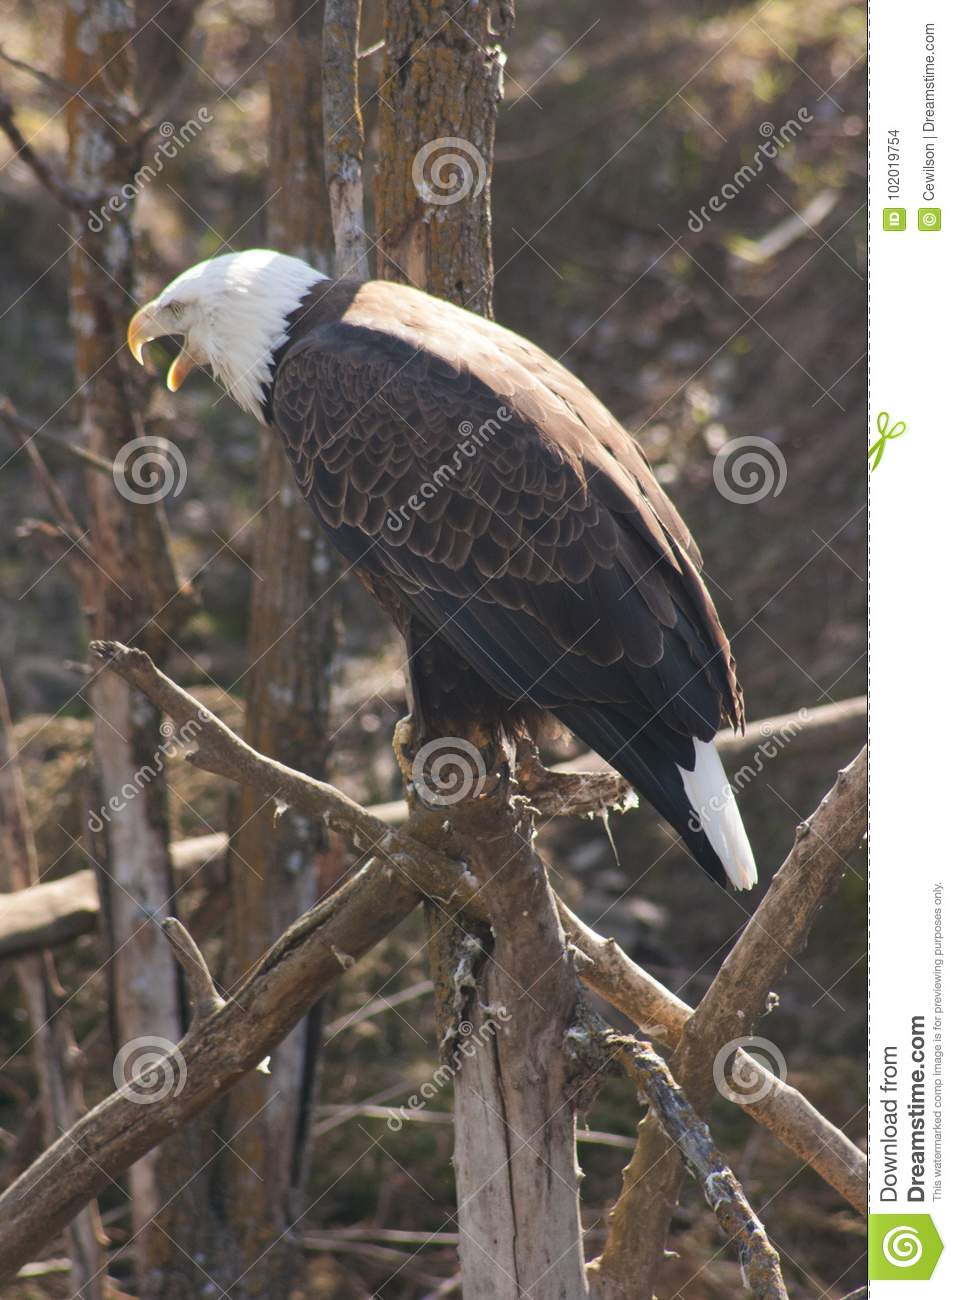 Eagle song free audio books trial.